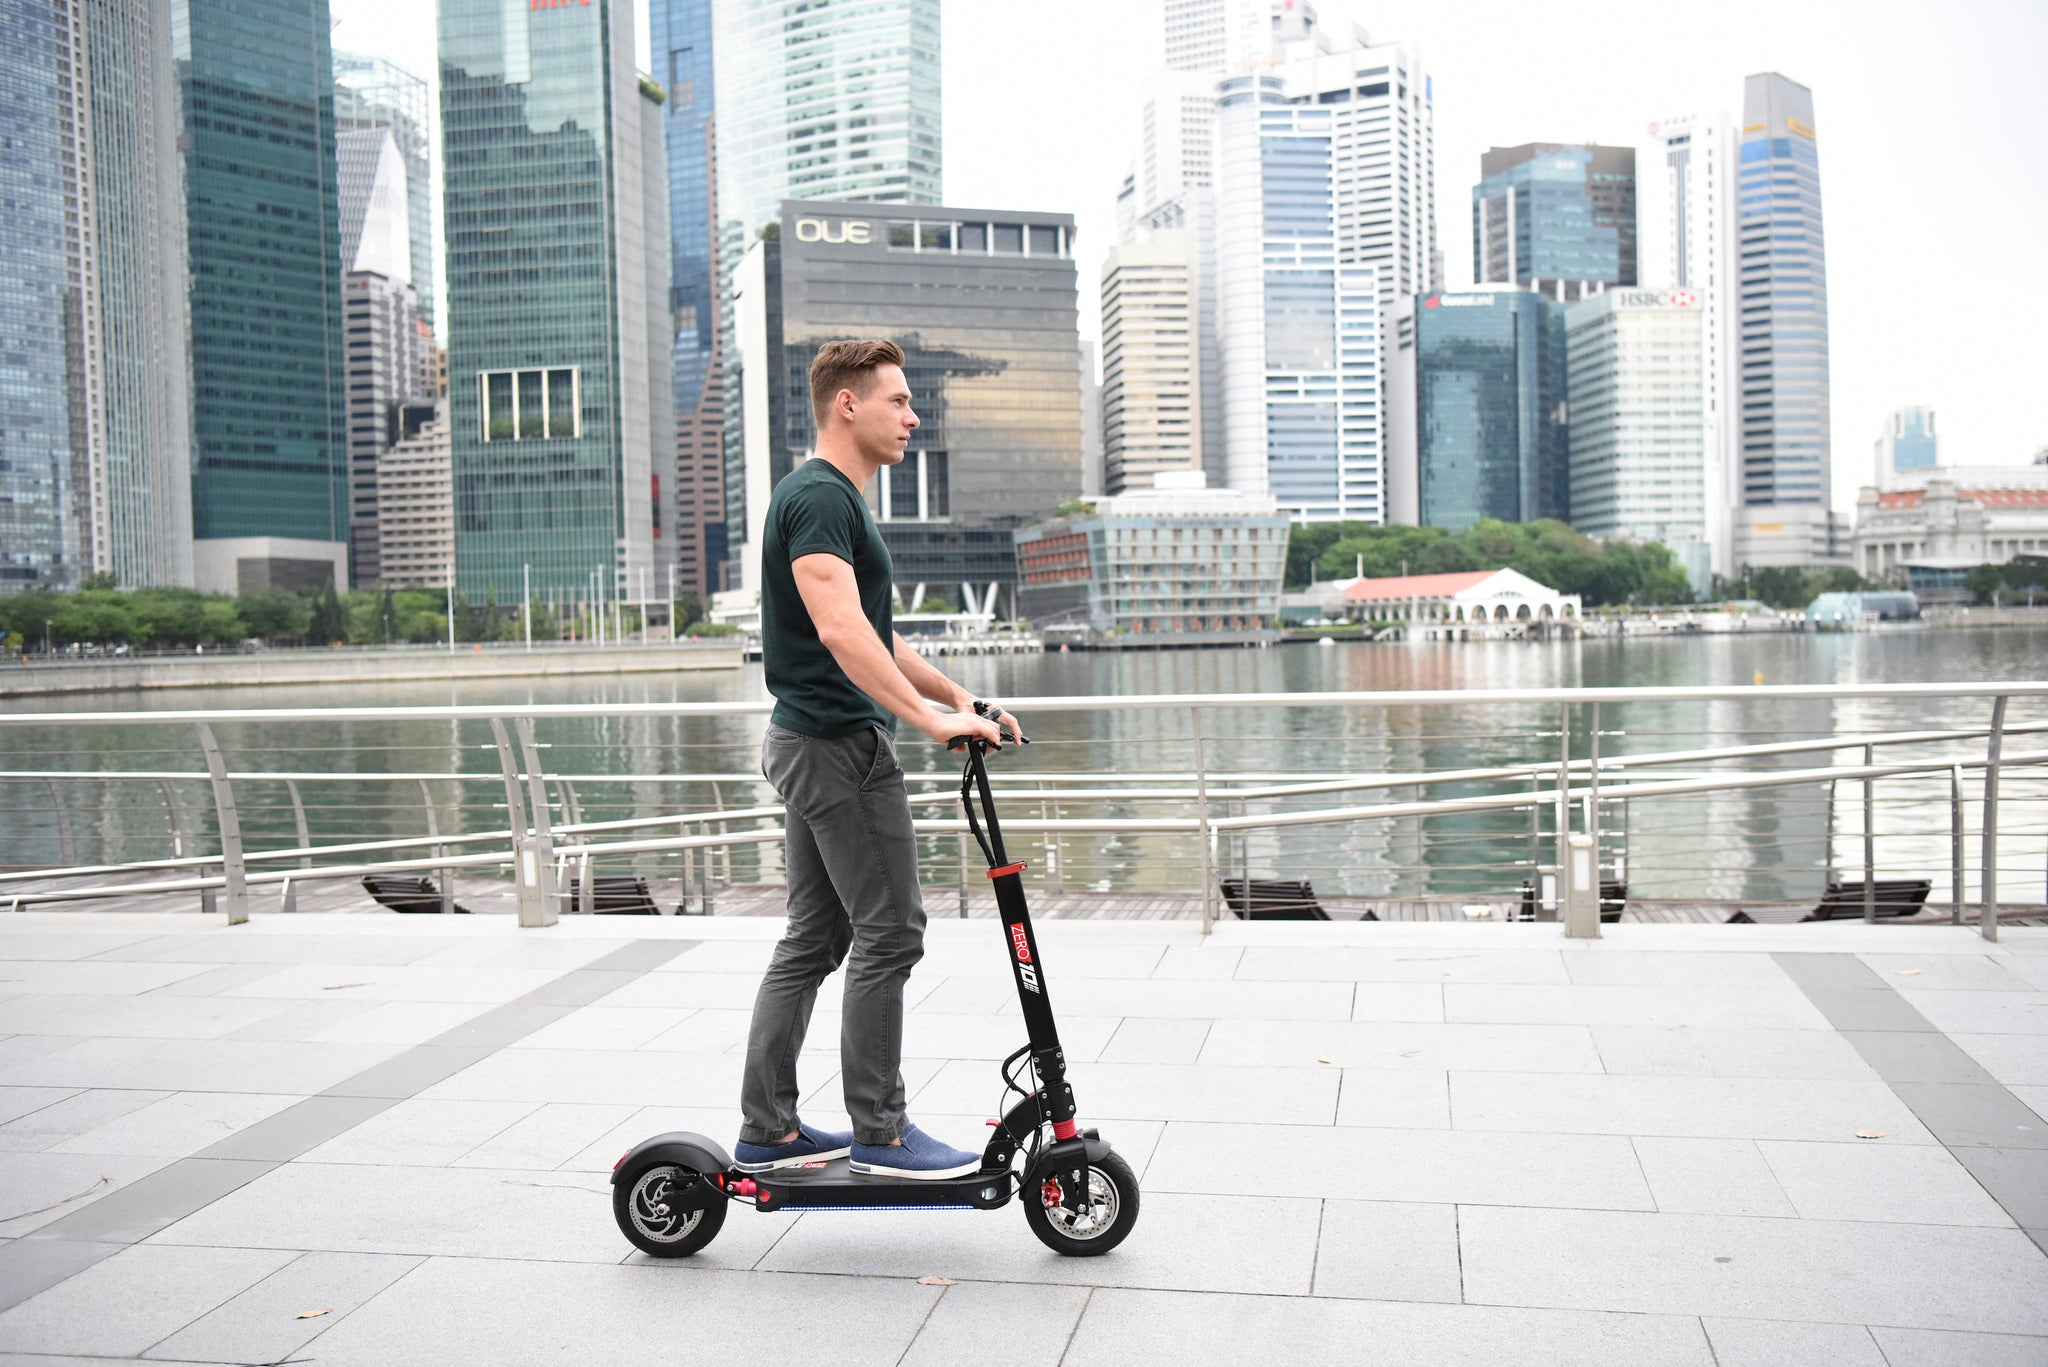 Guy on ZERO 10 scooter in business district